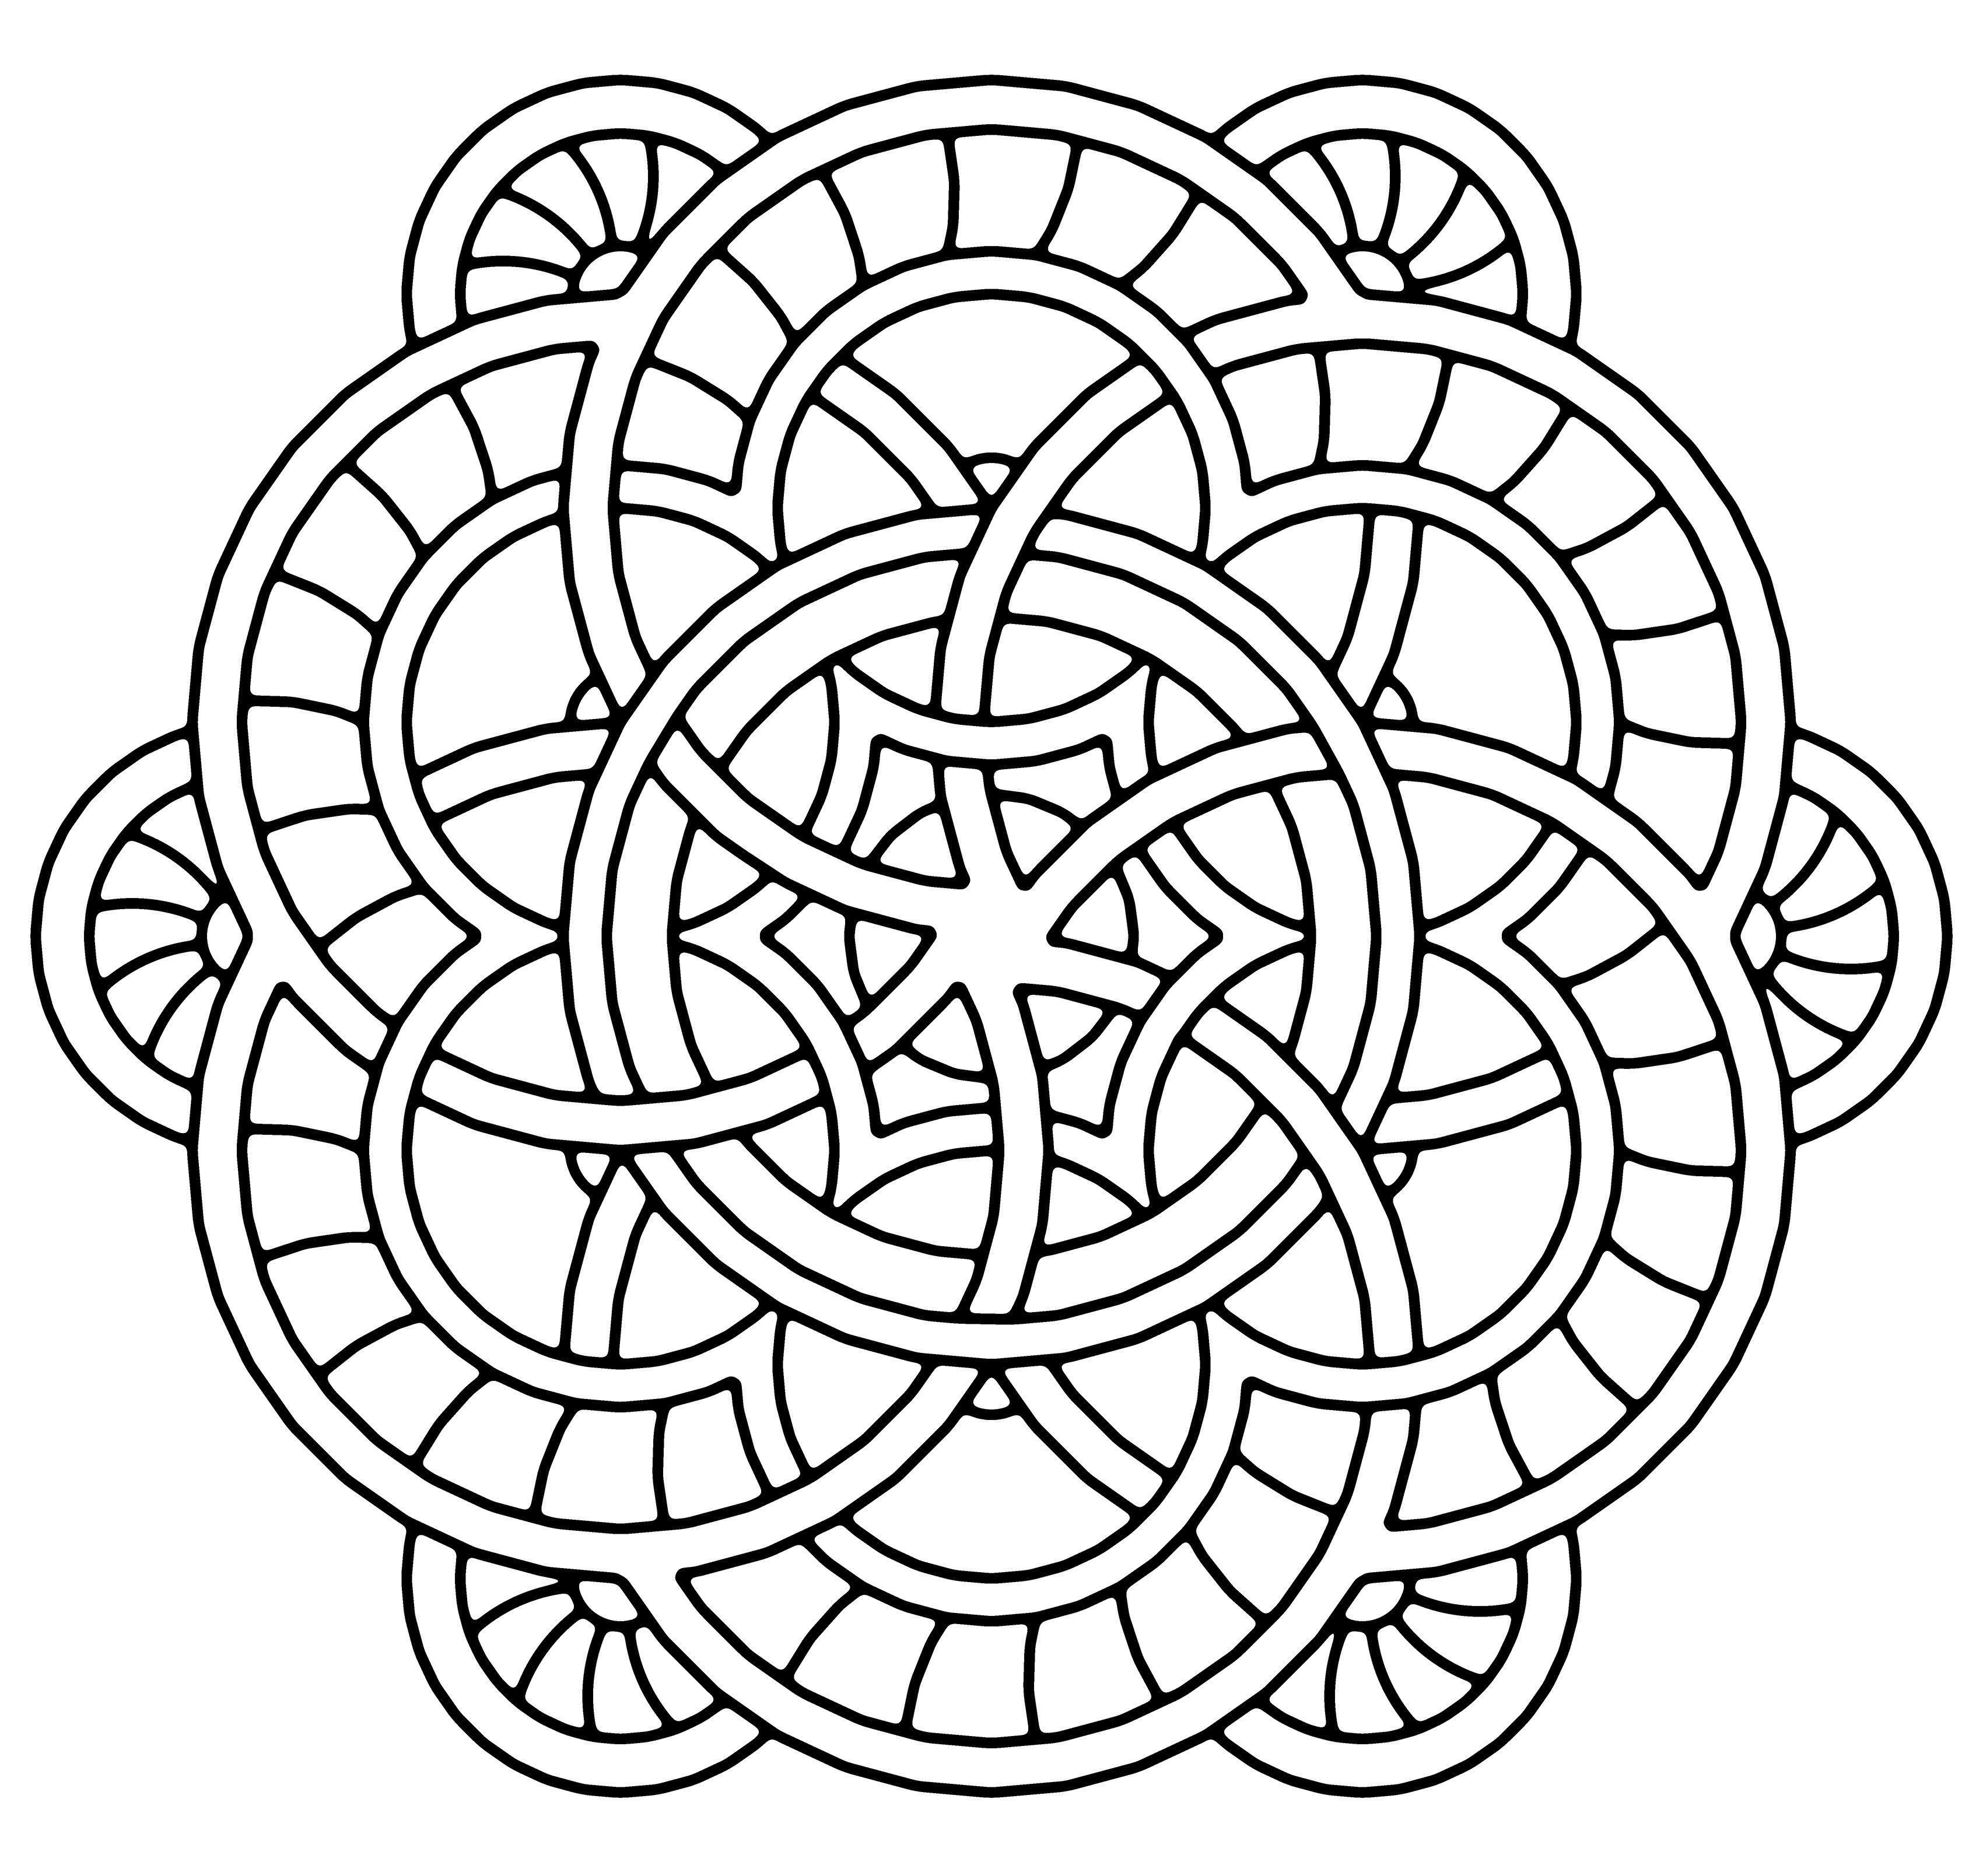 3400x3217 Free Coloring Pages Of Mandala Branding Inspiration